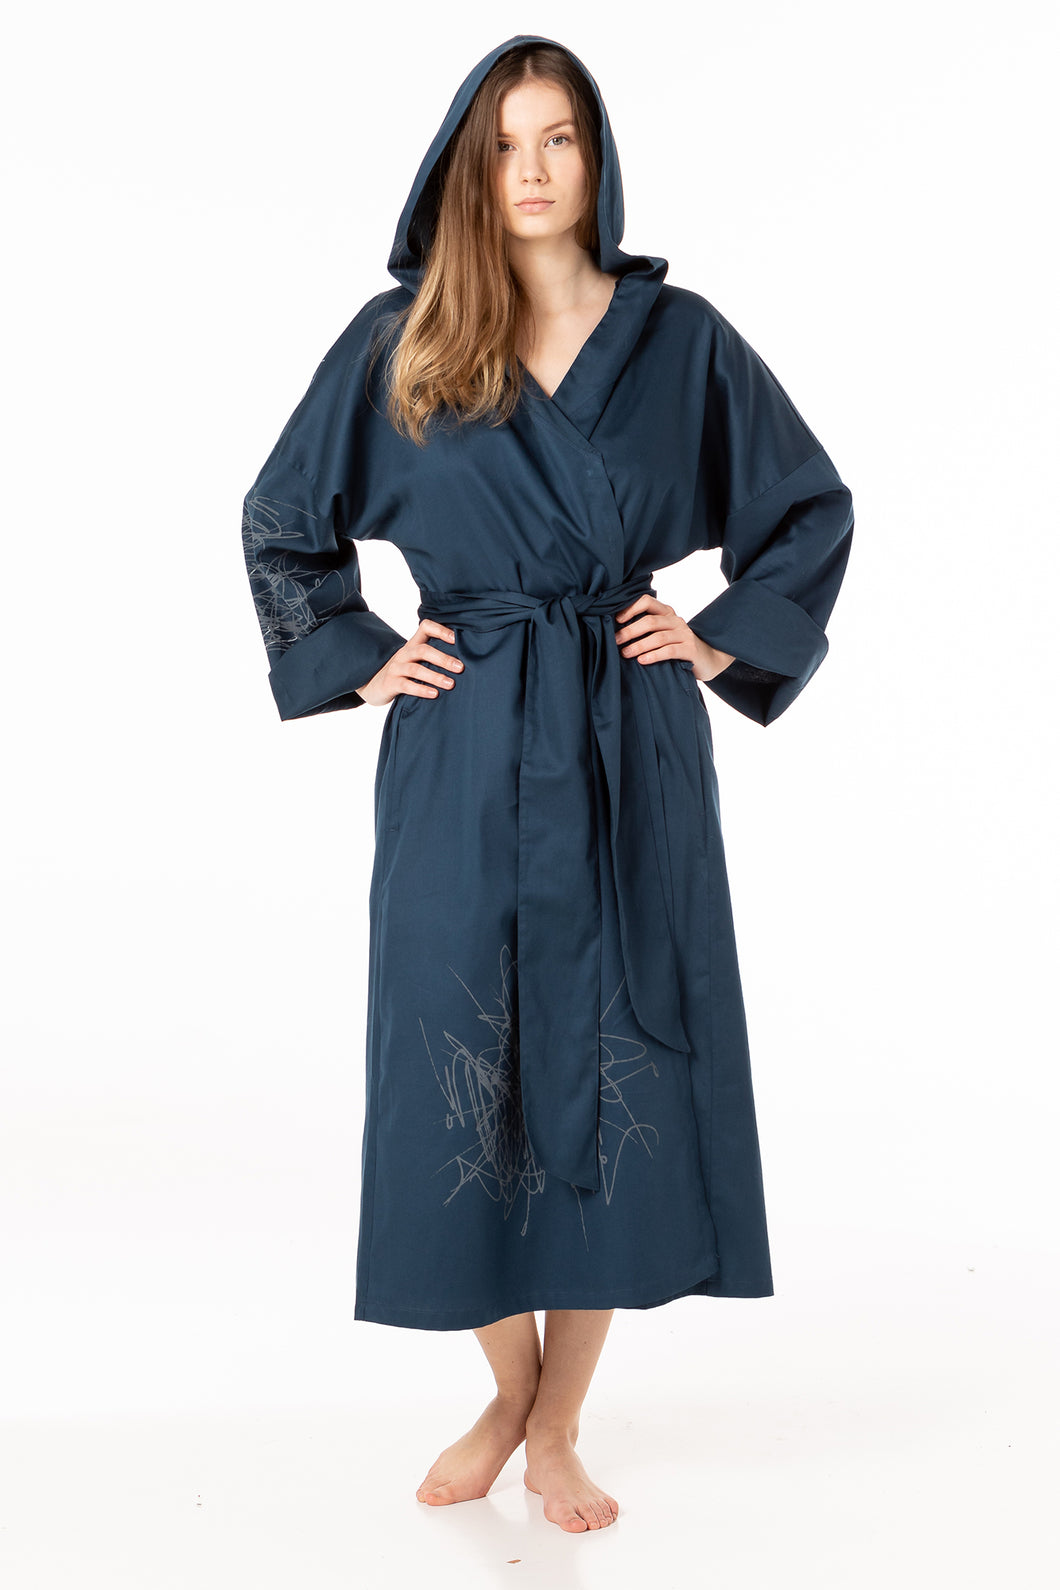 Hooded unisex dressing gown of a dark night sky